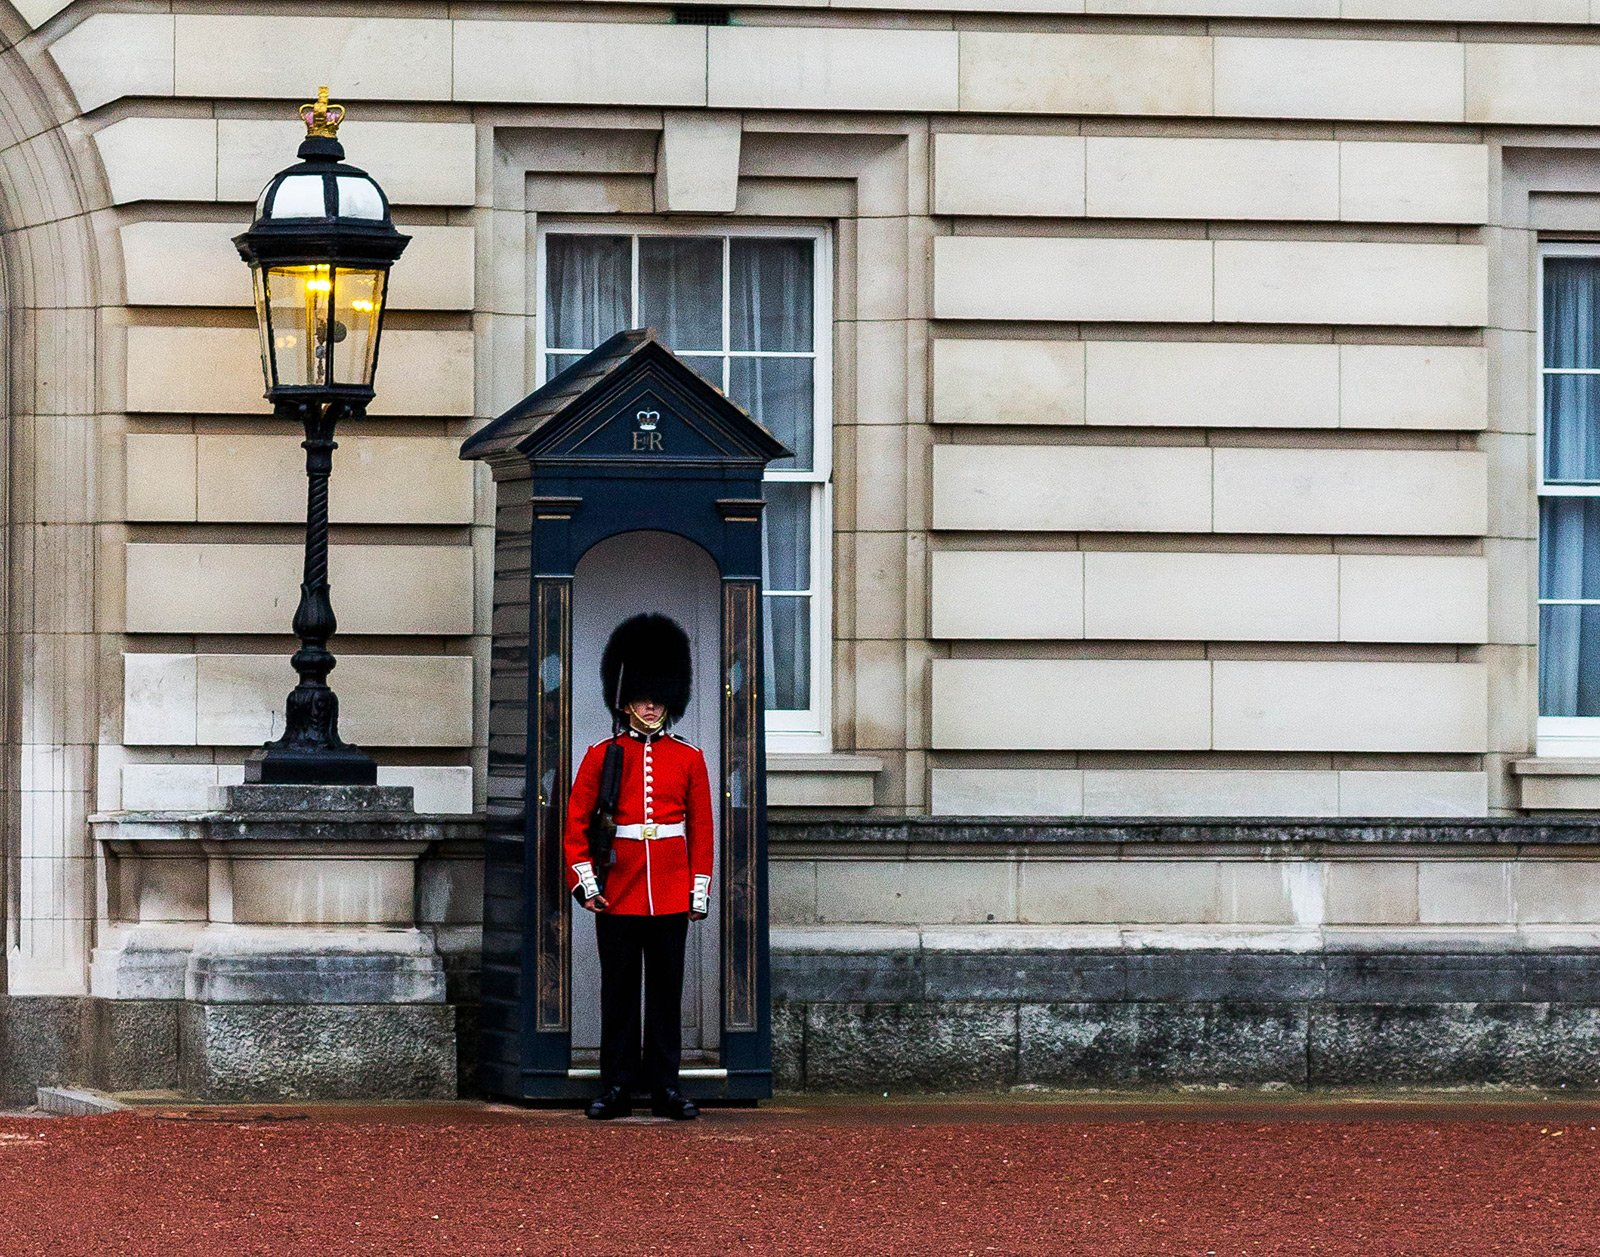 How to make british guard laugh in London